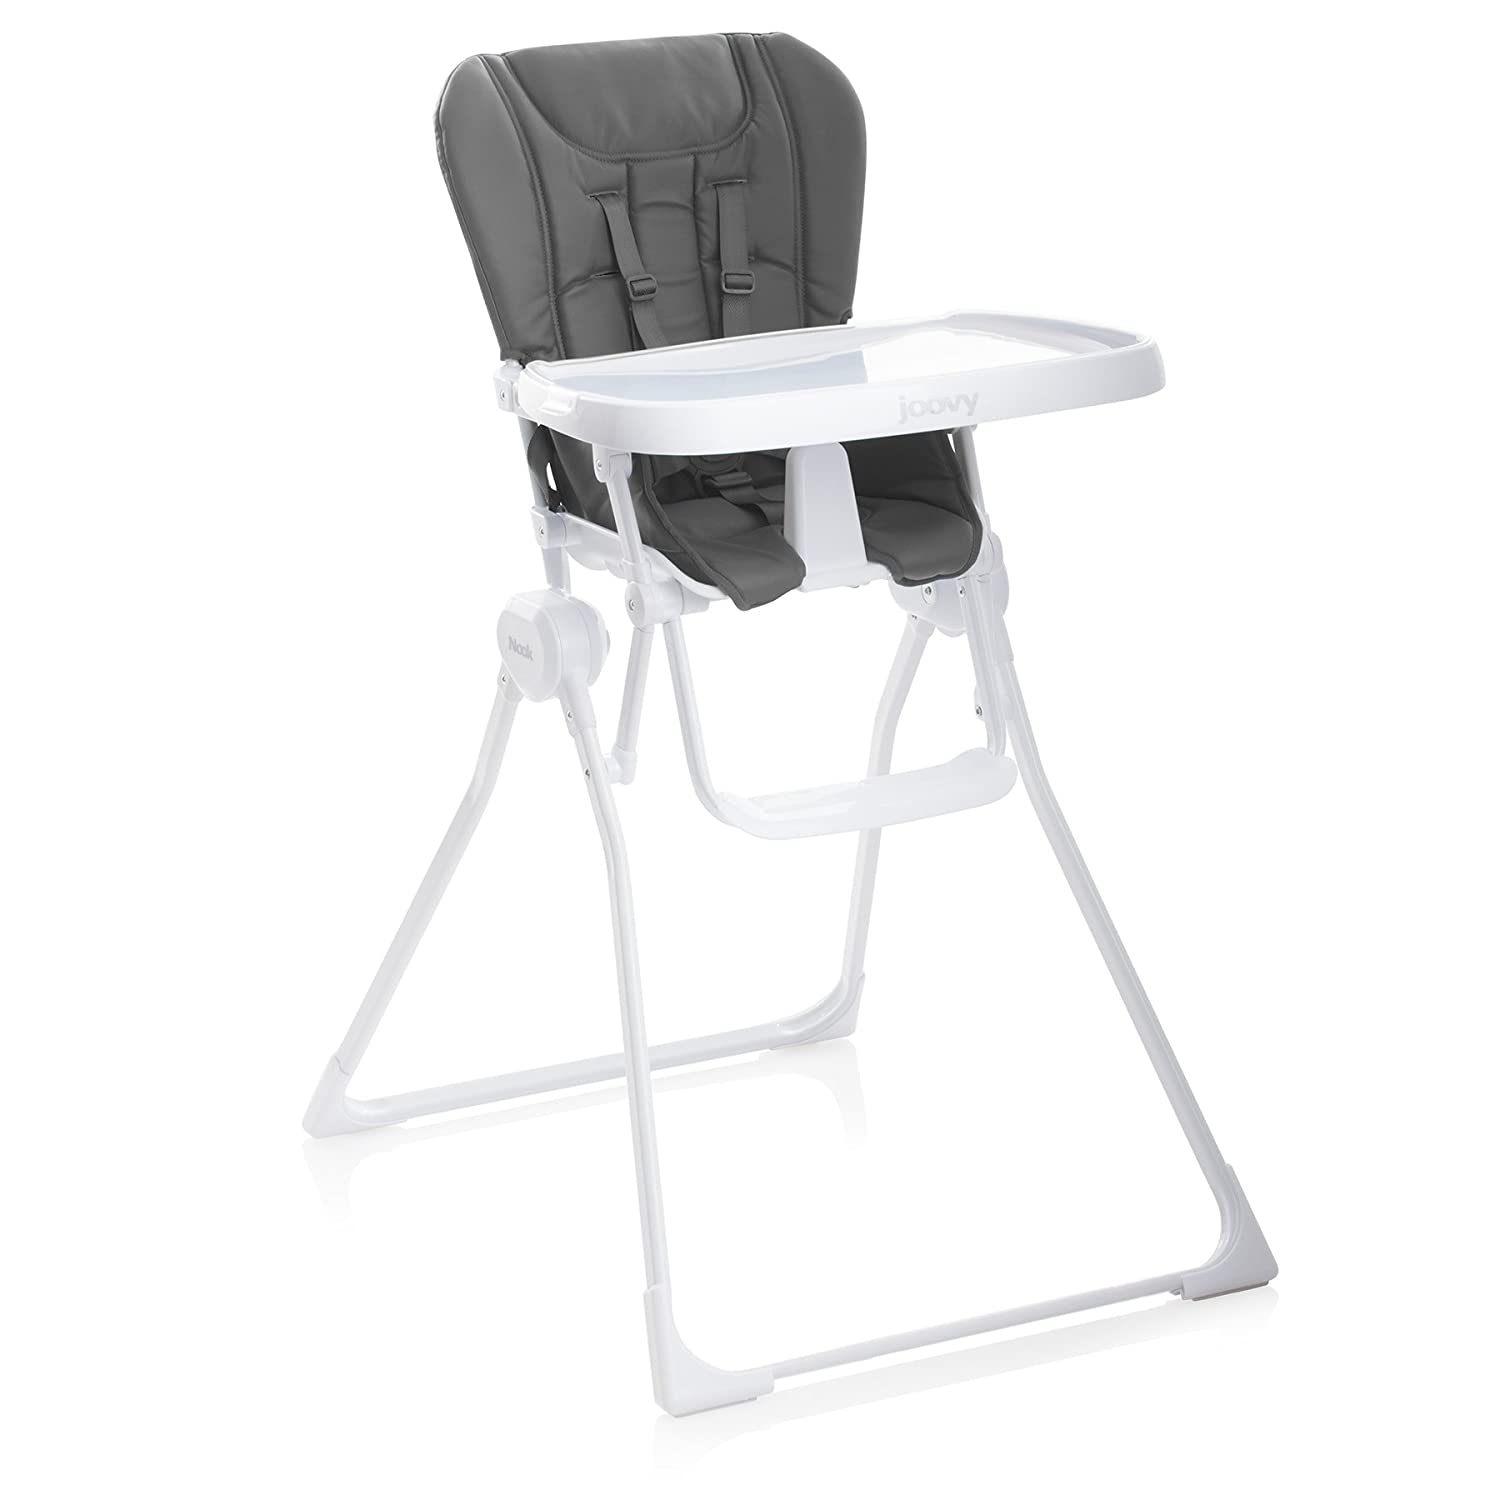 JOOVY New Nook High Chair, Charcoal 2069